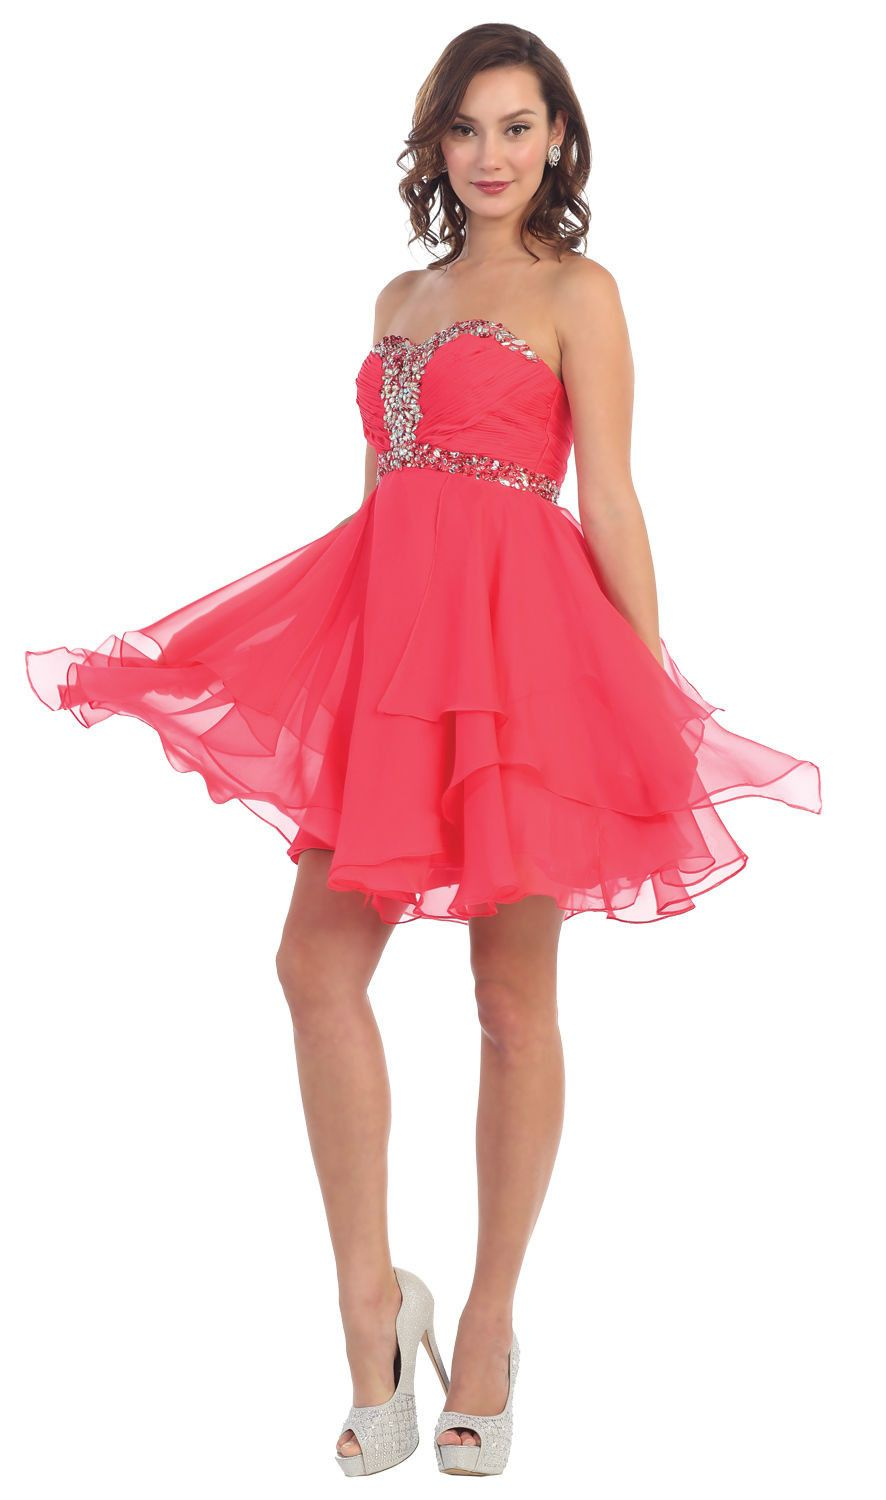 Short Prom Plus Size Homecoming Cocktail Dress - The Dress Outlet Coral